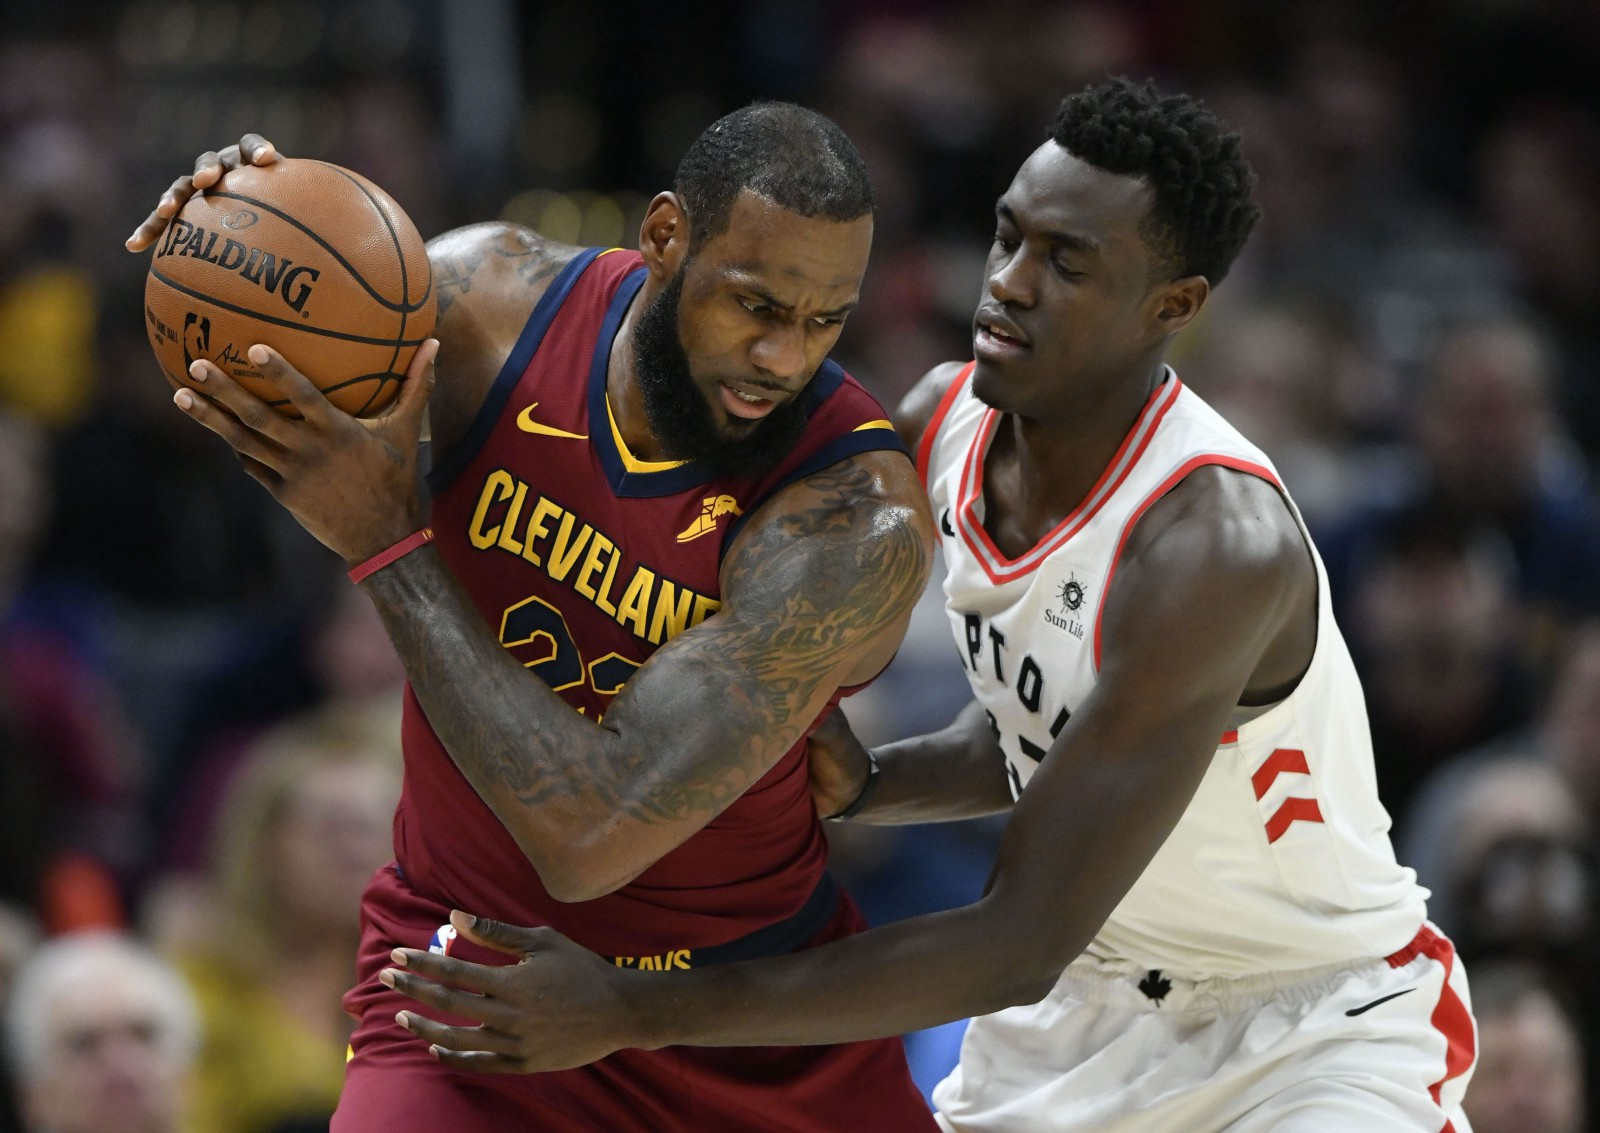 f823f236e095 This was the first real glimpse of what a playoff series between the  Cleveland Cavaliers and Toronto Raptors would look like in this current  iteration of ...